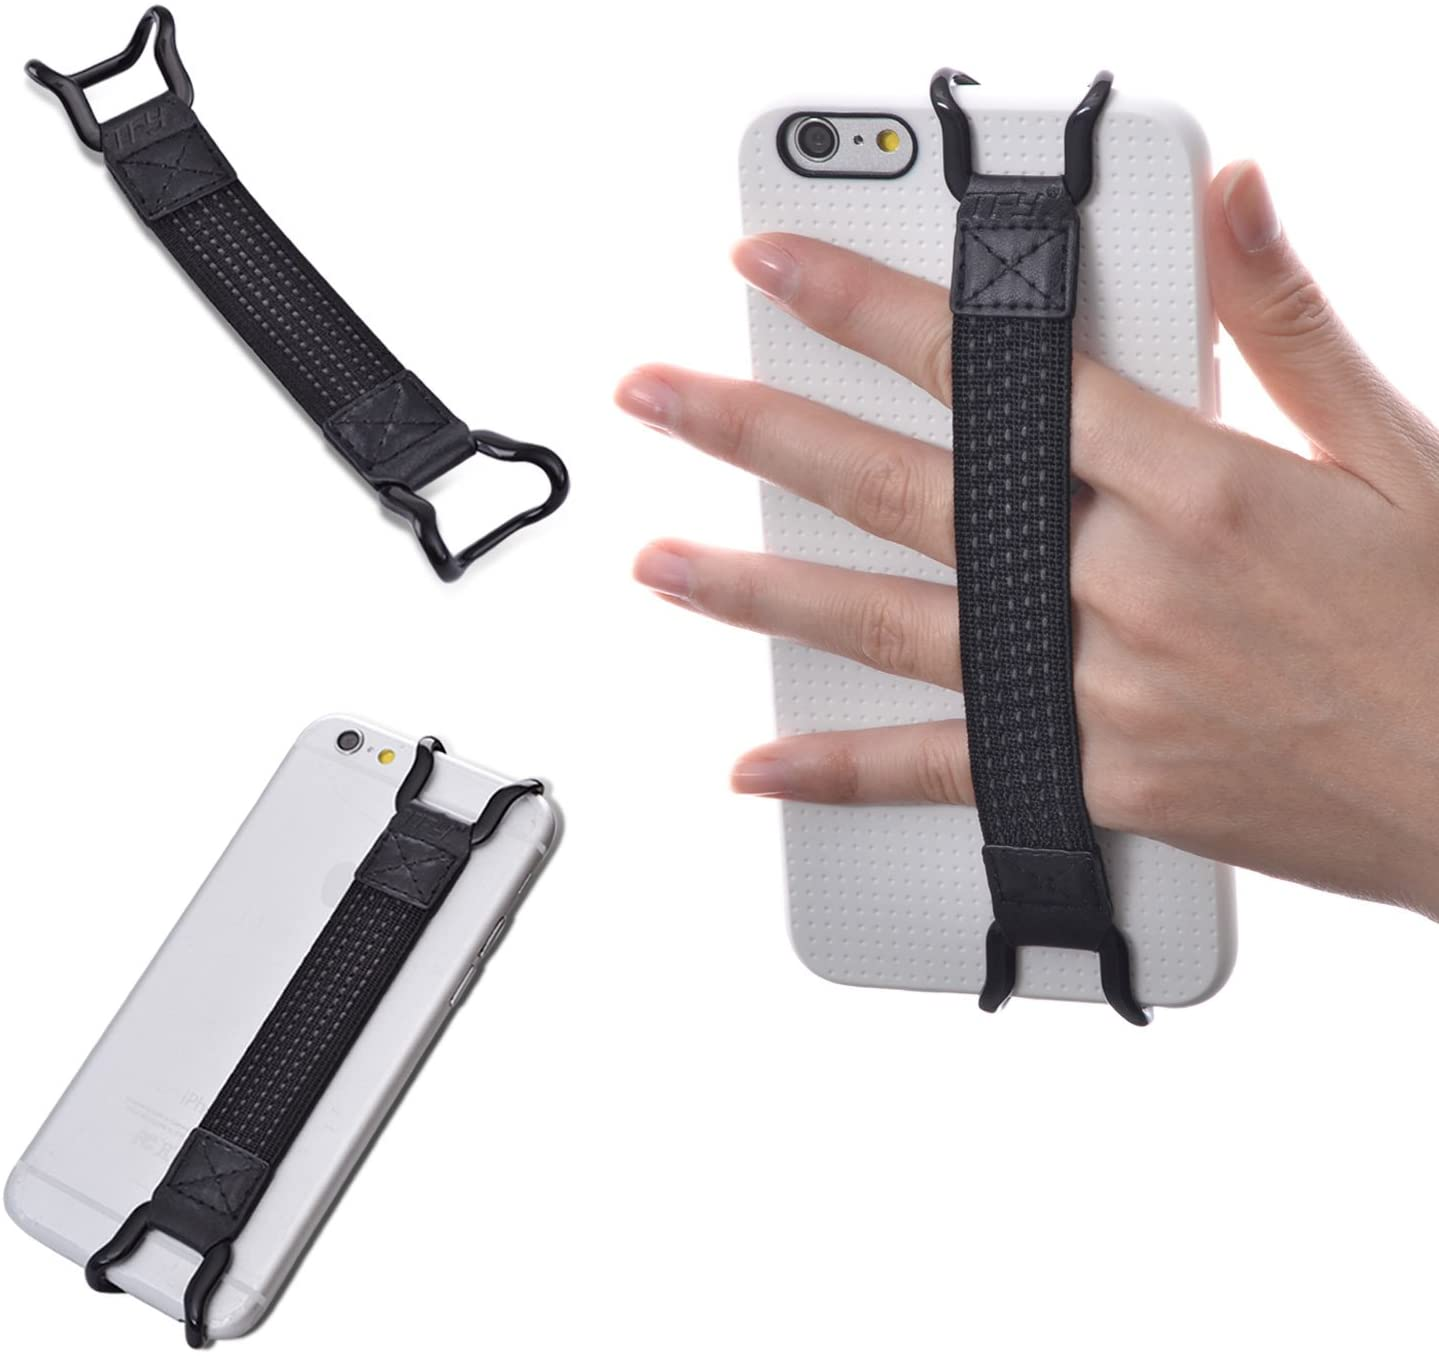 TFY Security Hand Strap Holder Compatible with iPhone Xs Max Xs XR / 8/8 Plus 6 / 6S (Plus) - iPhone 7/7 Plus - Samsung Galaxy S10 / S10 Edge - Galaxy Note - Huawei Mate 10/20 Pro and More